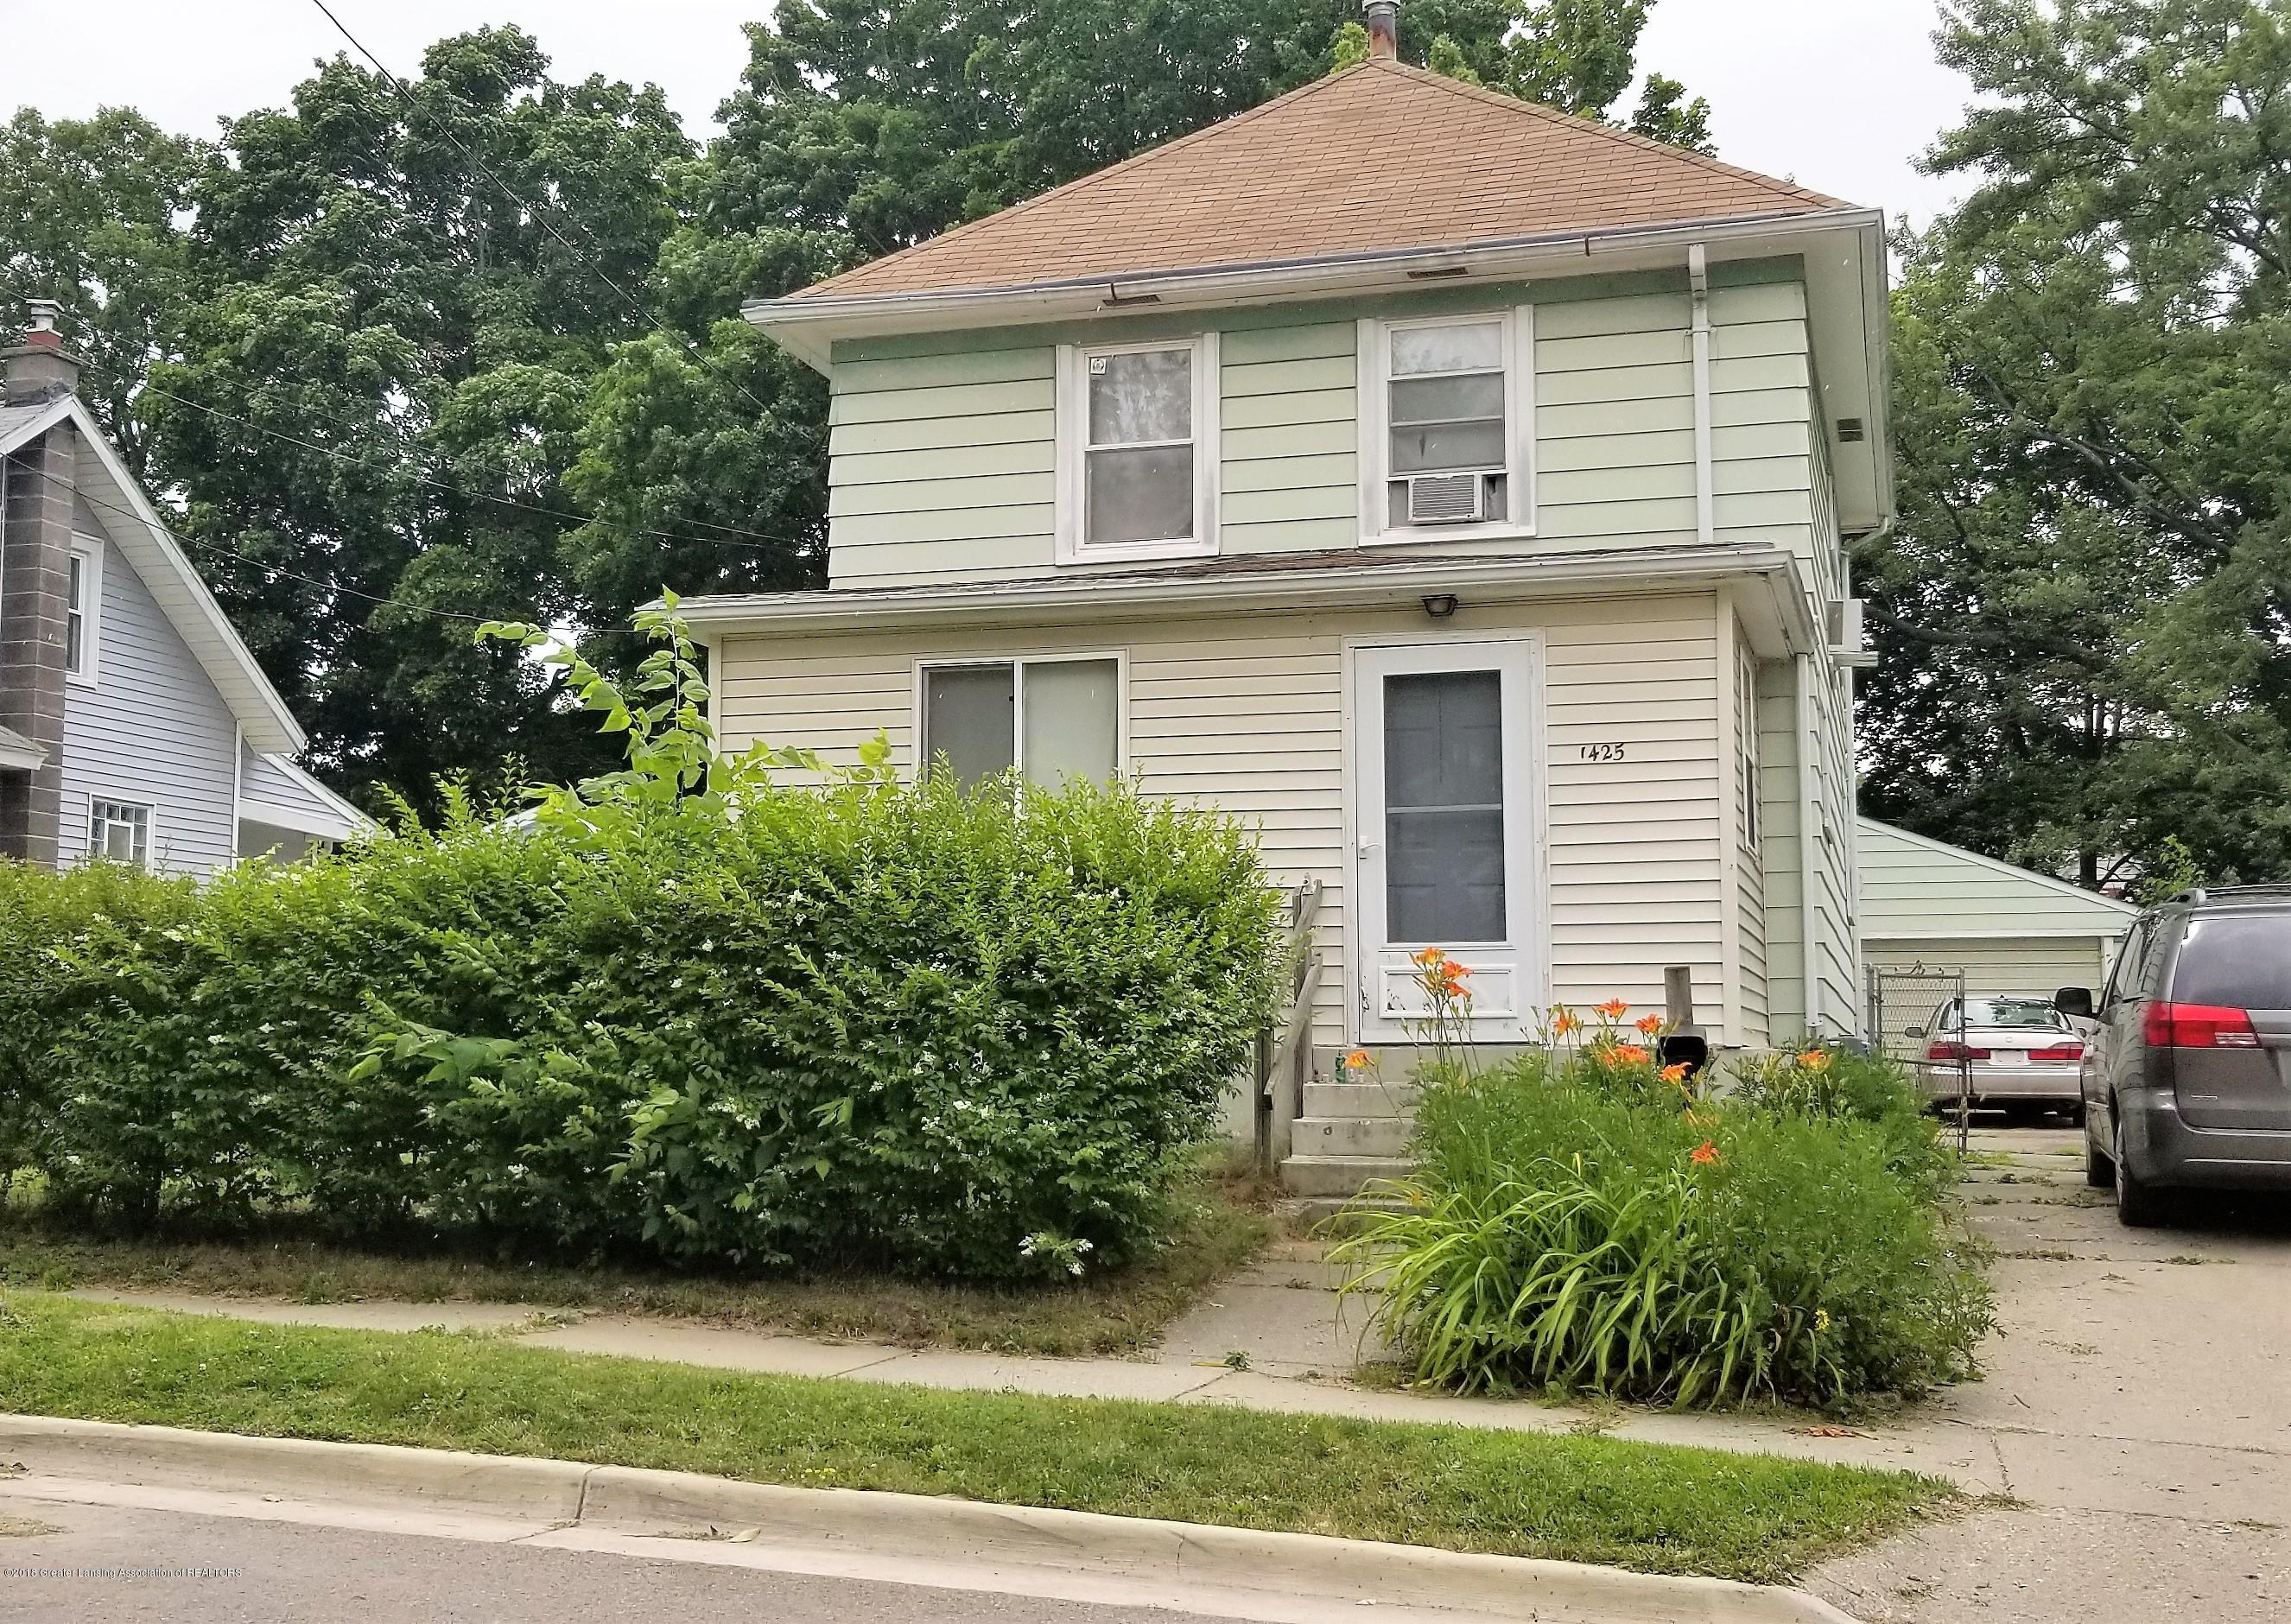 1425 Christopher St - Front of Home - 1